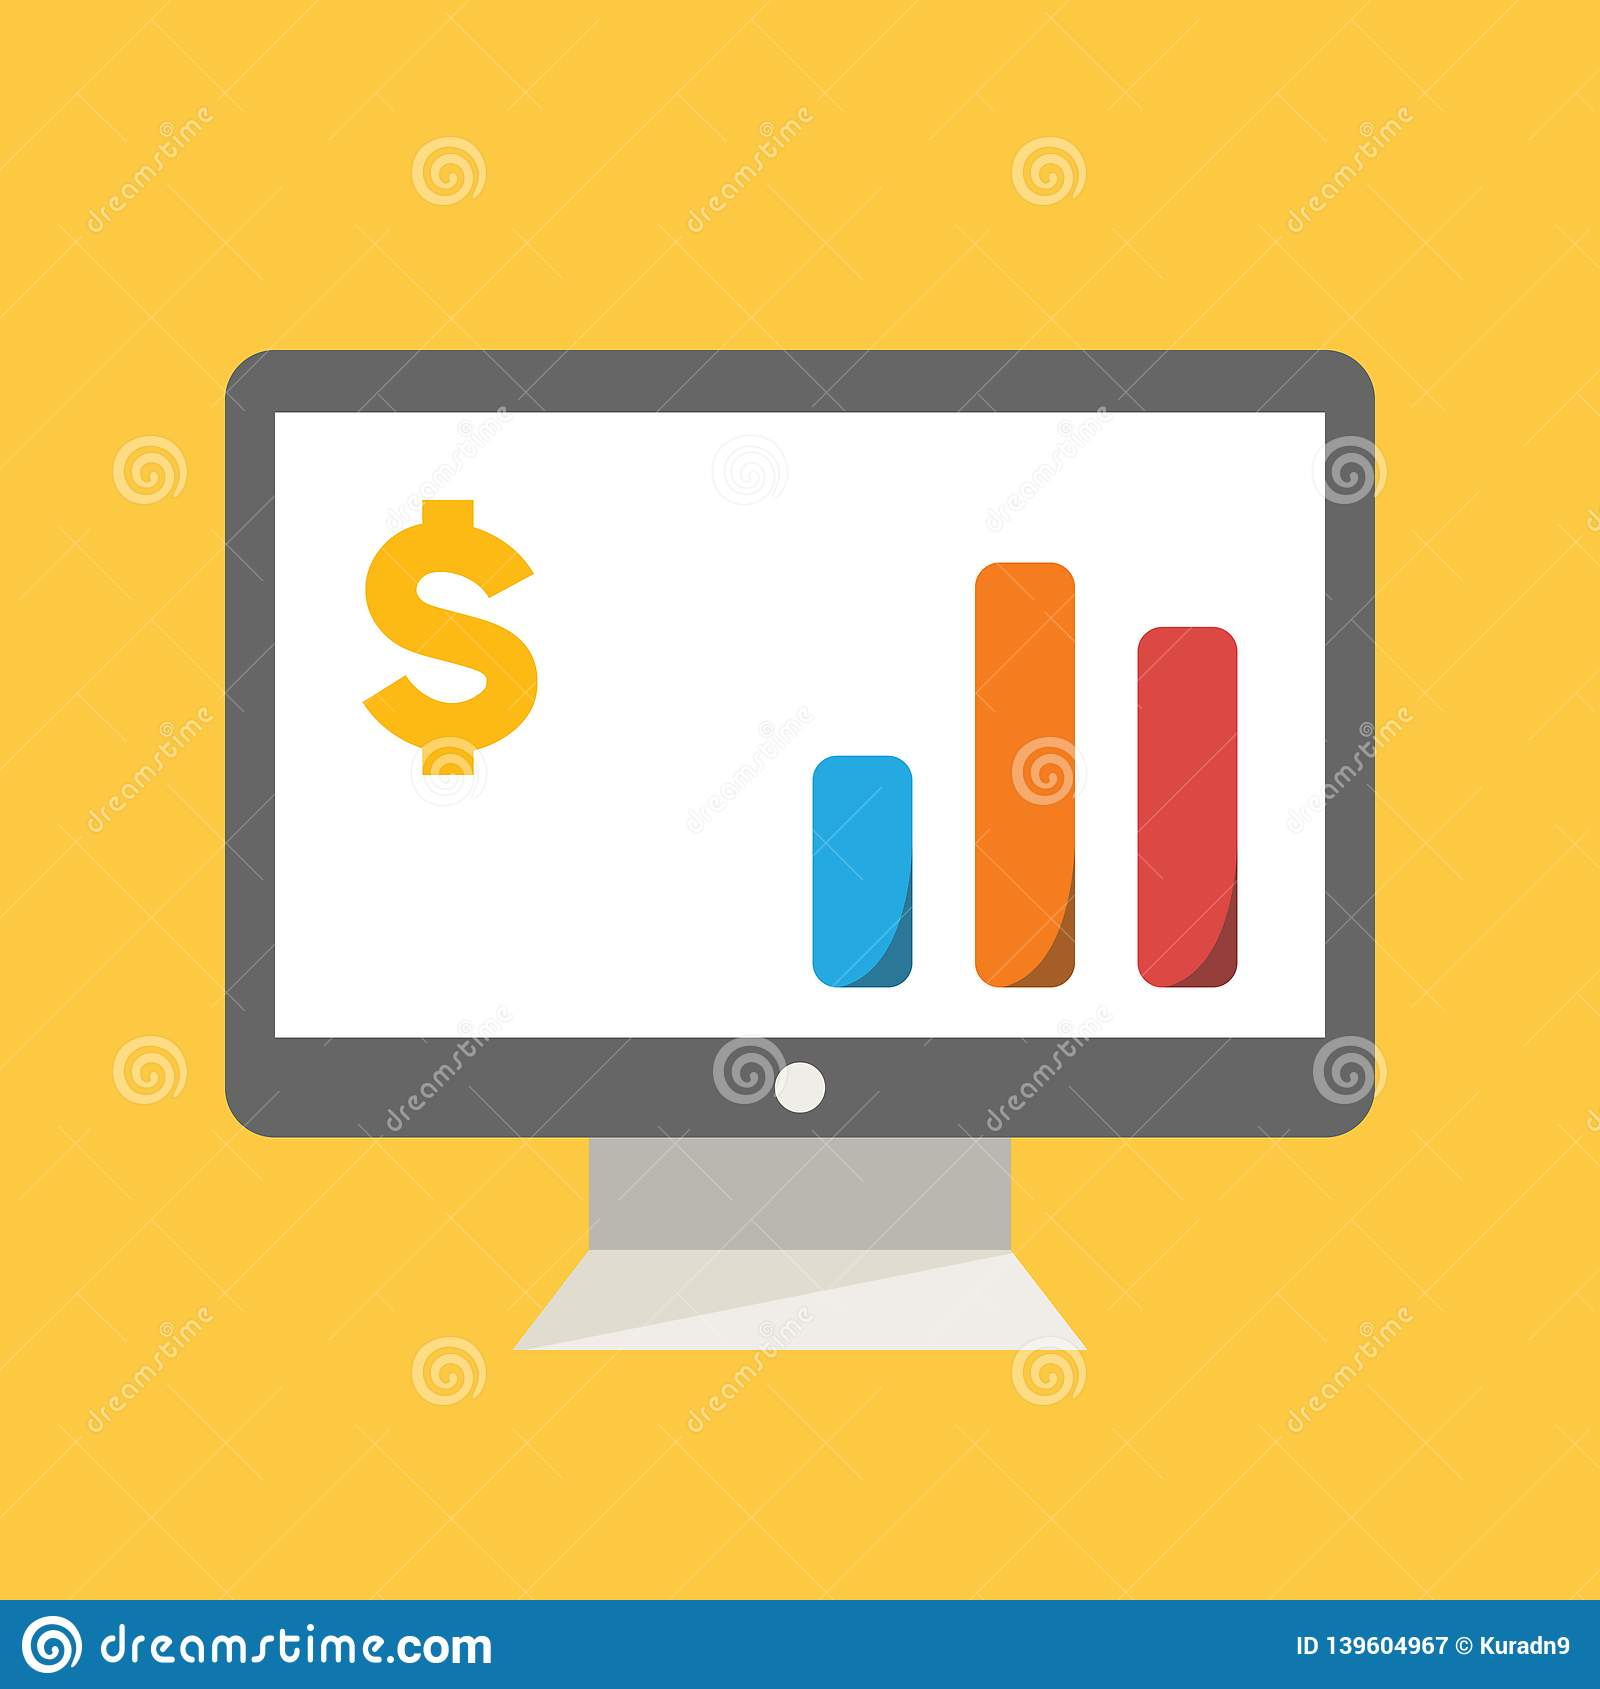 Business, Banking and Finance icon, desktop monitor showing diagram sales statistic